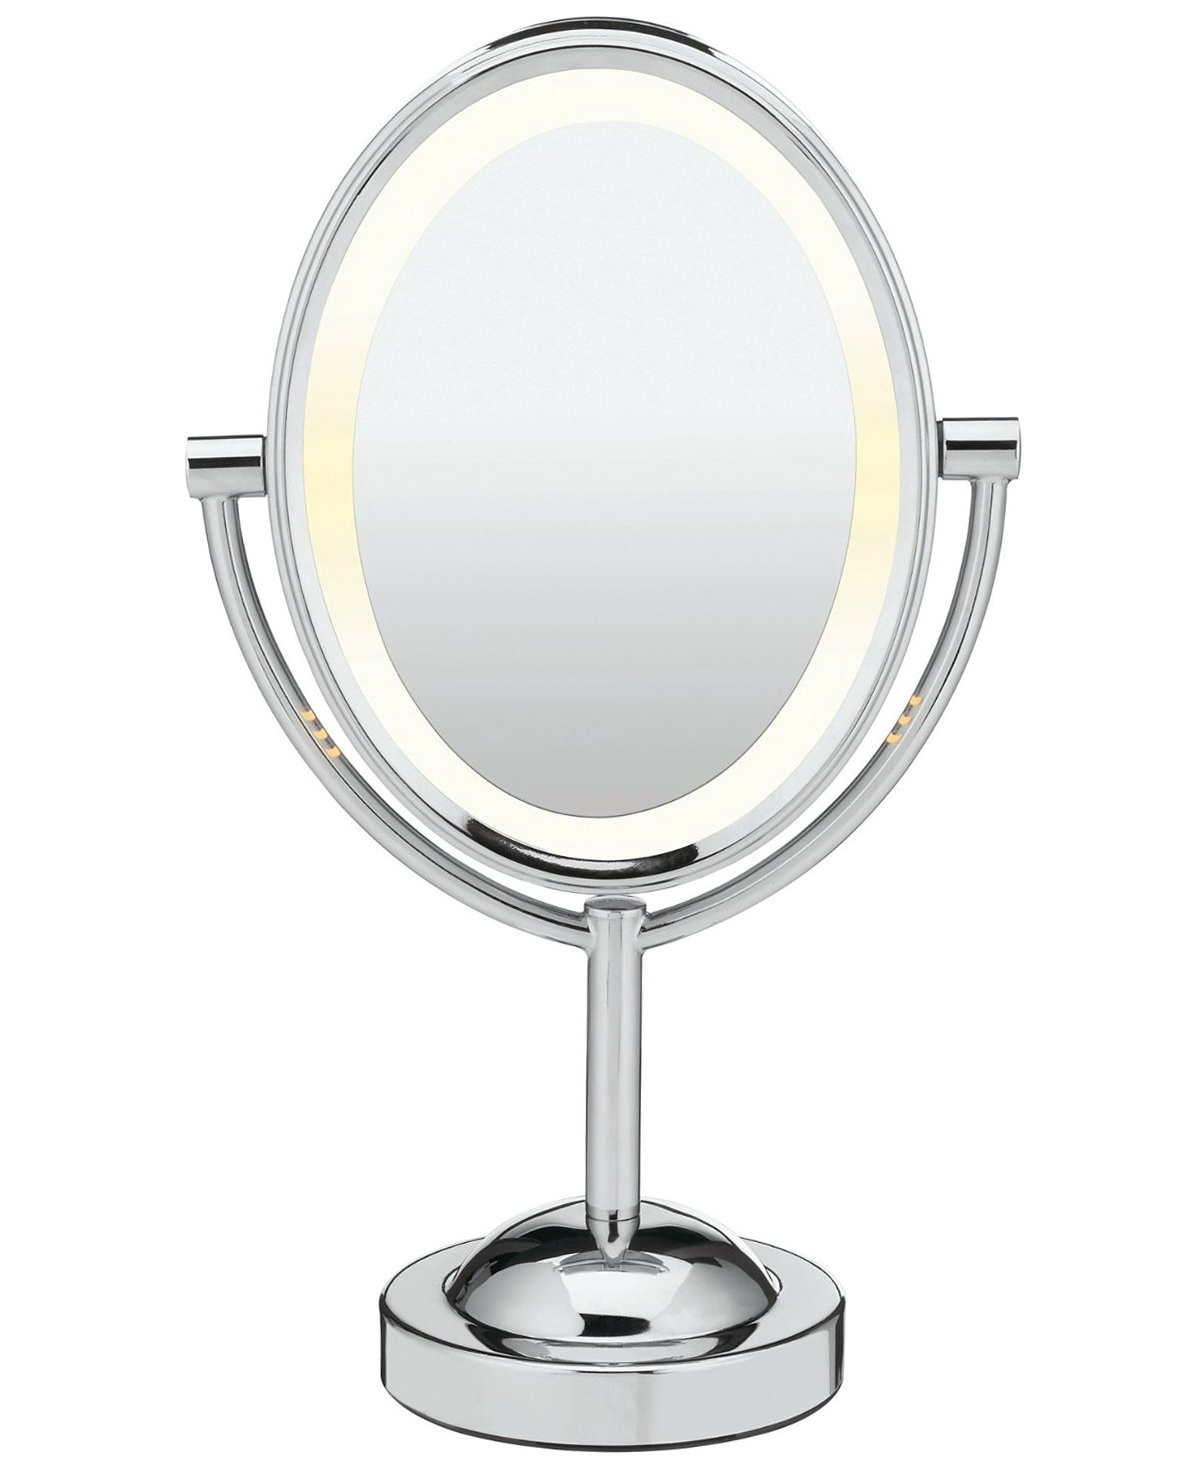 Double Sided Mirror With Light